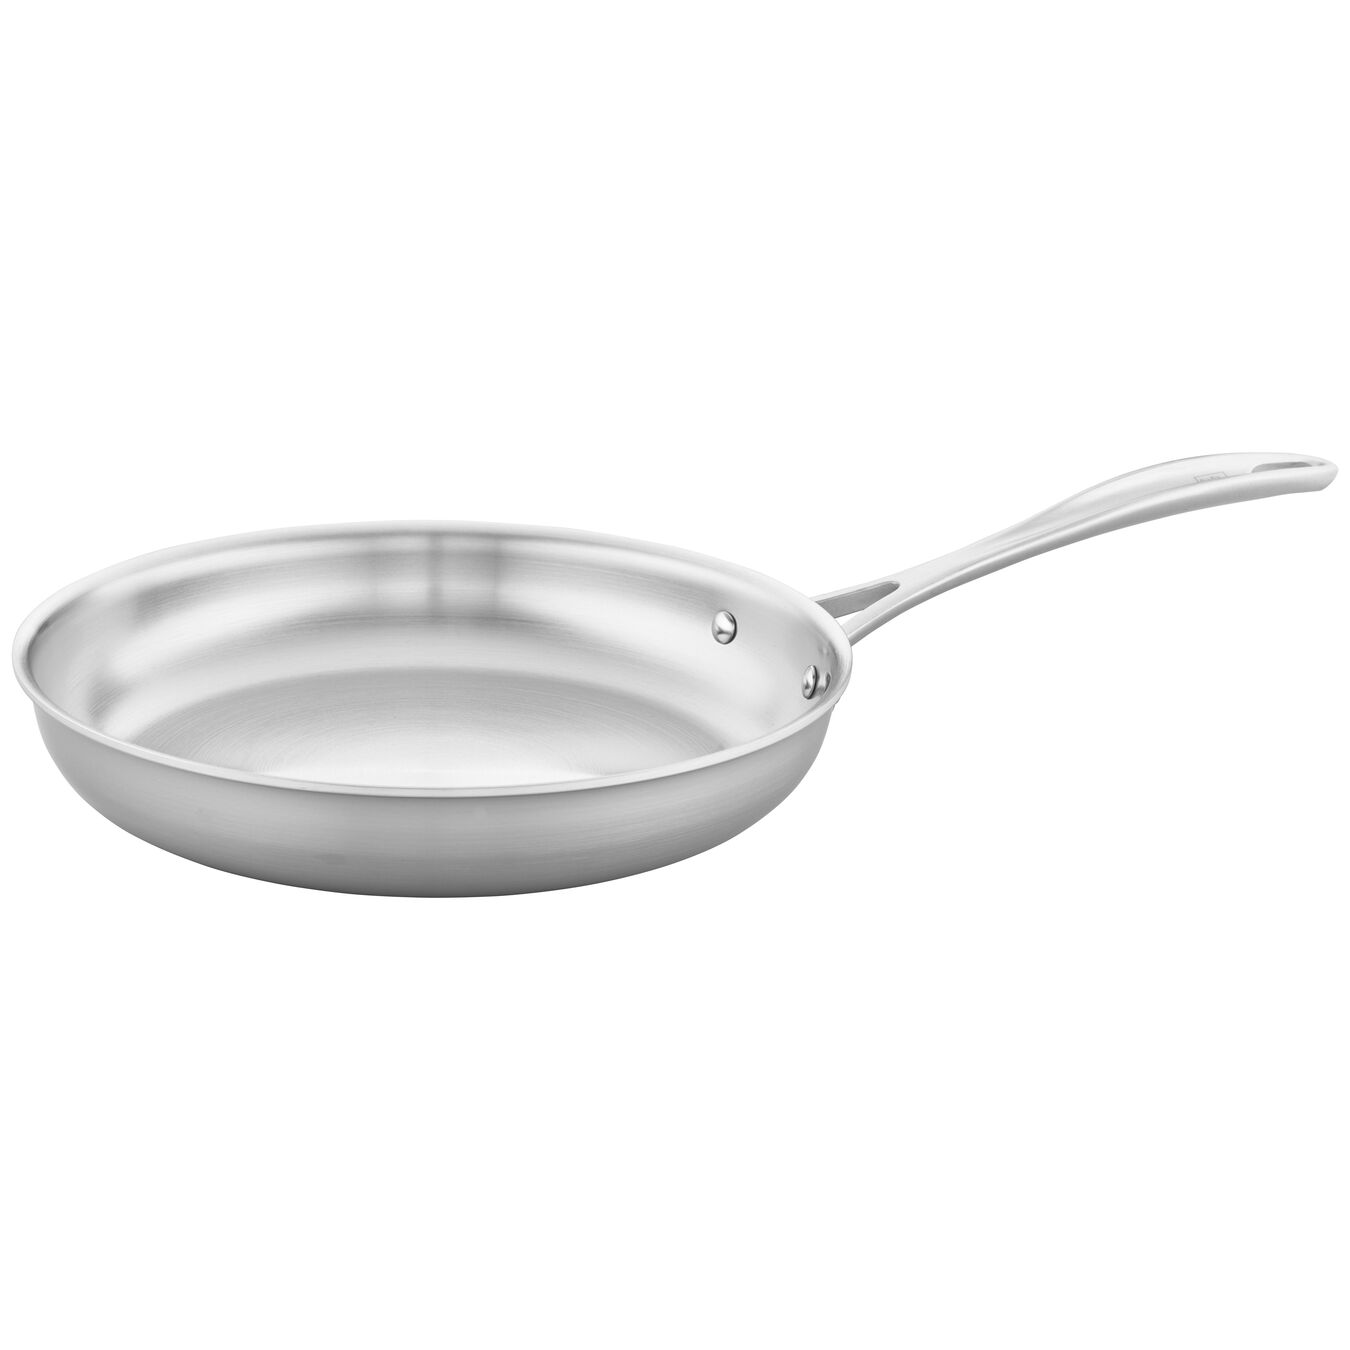 3-ply 10-inch Stainless Steel Fry Pan,,large 1